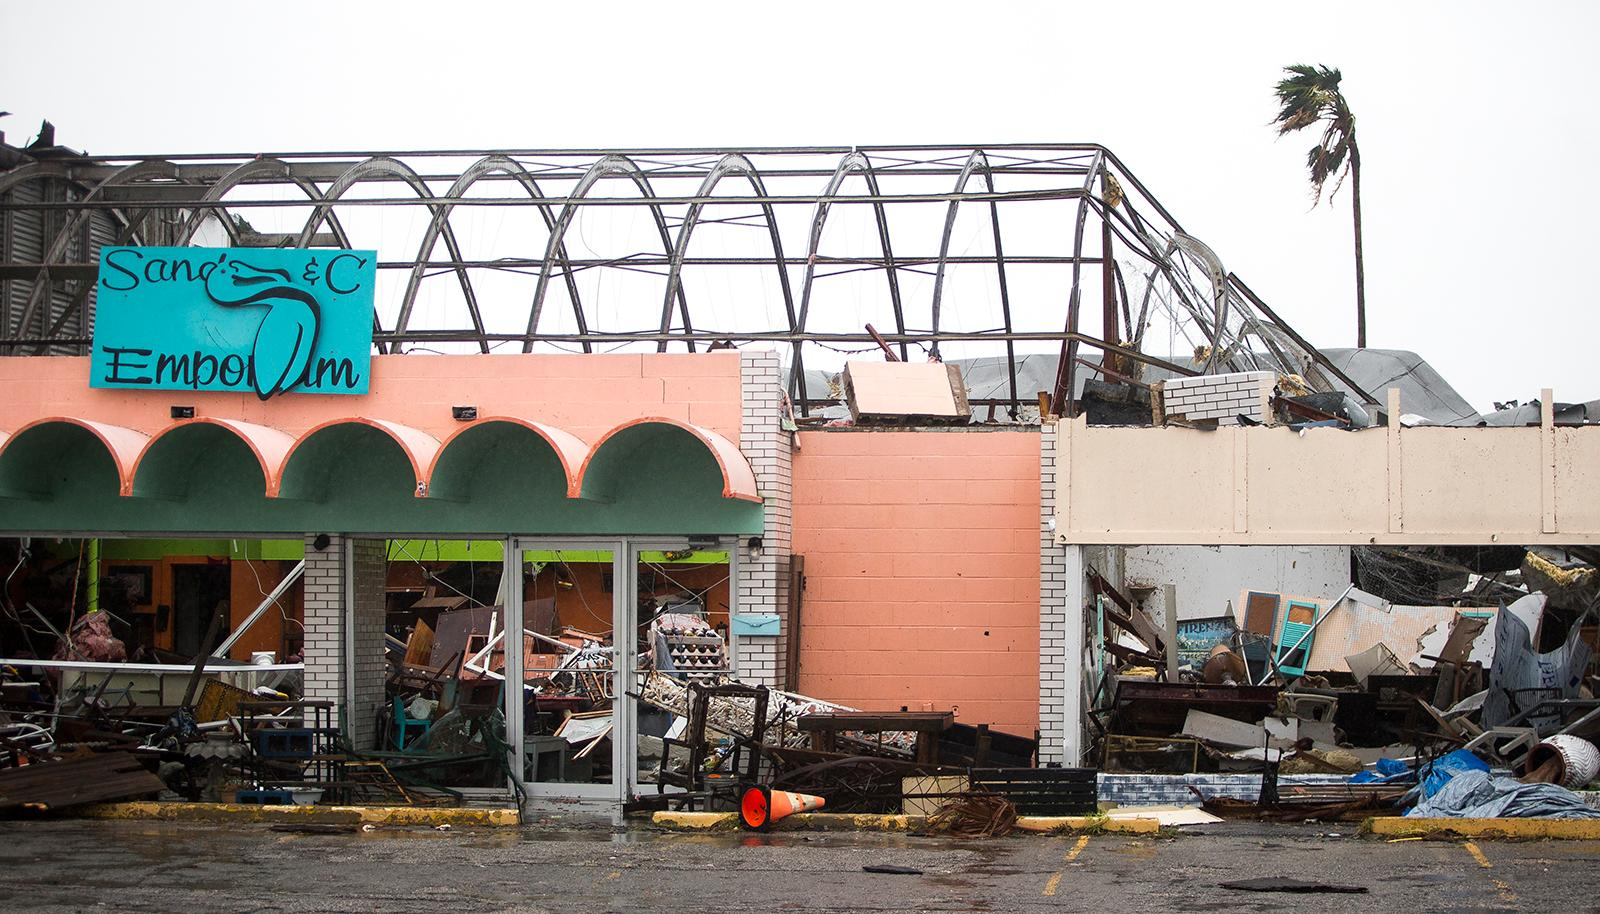 Stores remain destroyed after Hurricane Harvey ripped through Rockport, Texas, on Saturday, Aug. 26, 2017.  The fiercest hurricane to hit the U.S. in more than a decade spun across hundreds of miles of coastline where communities had prepared for life-threatening storm surges, walls of water rushing inland.  (Nick Wanger/Austin American-Statesman via AP)